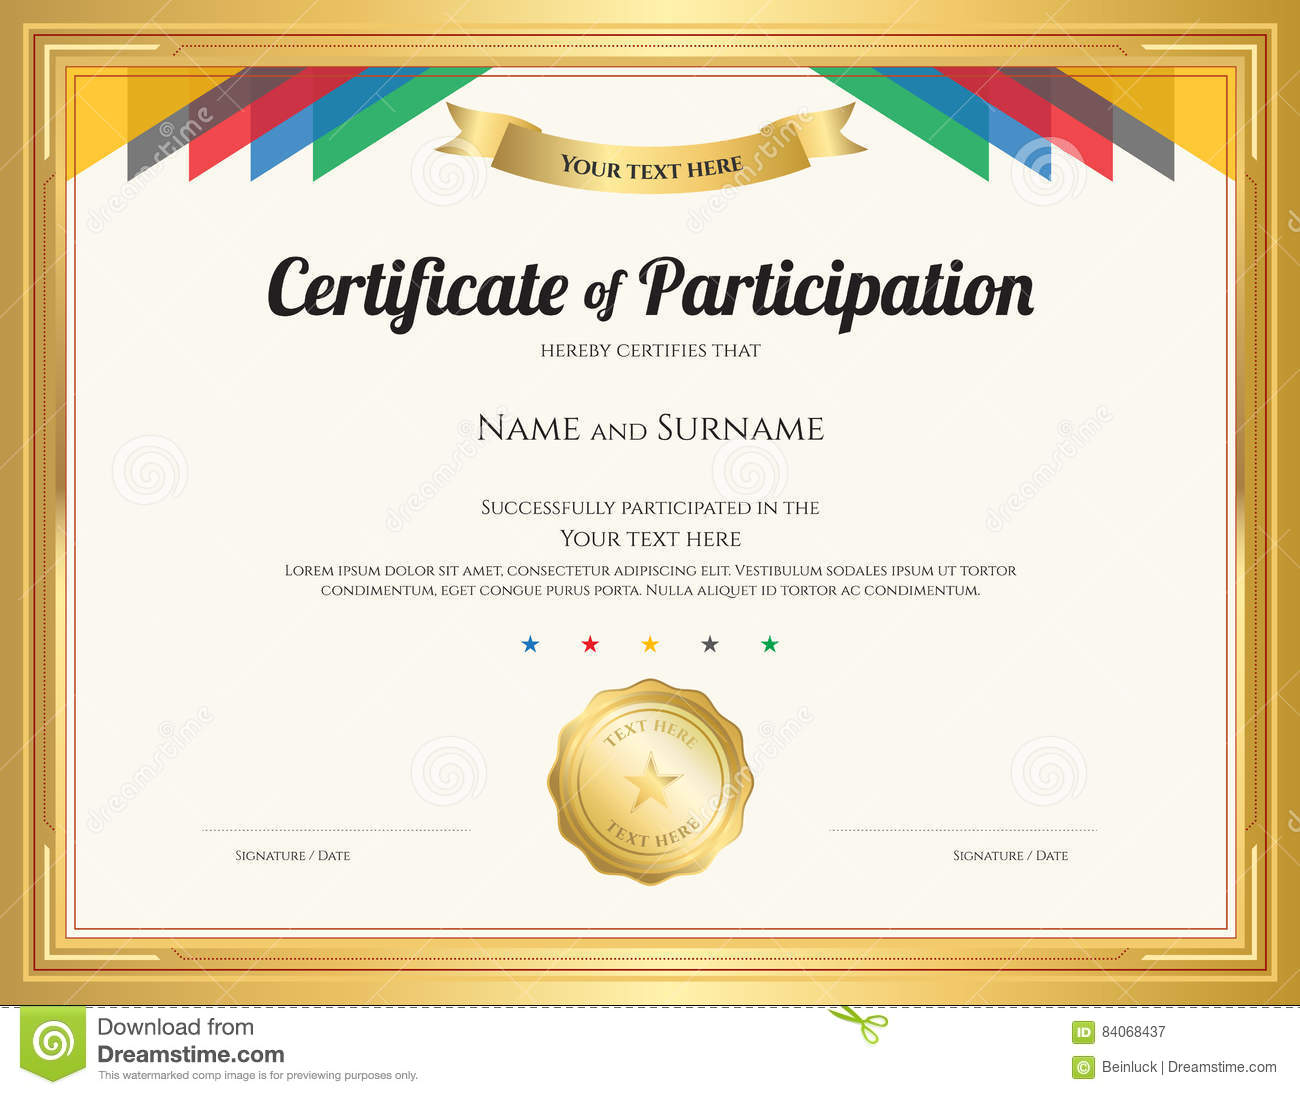 Certificate of attendance template word free download the best certificate of attendance template word free download yadclub Choice Image